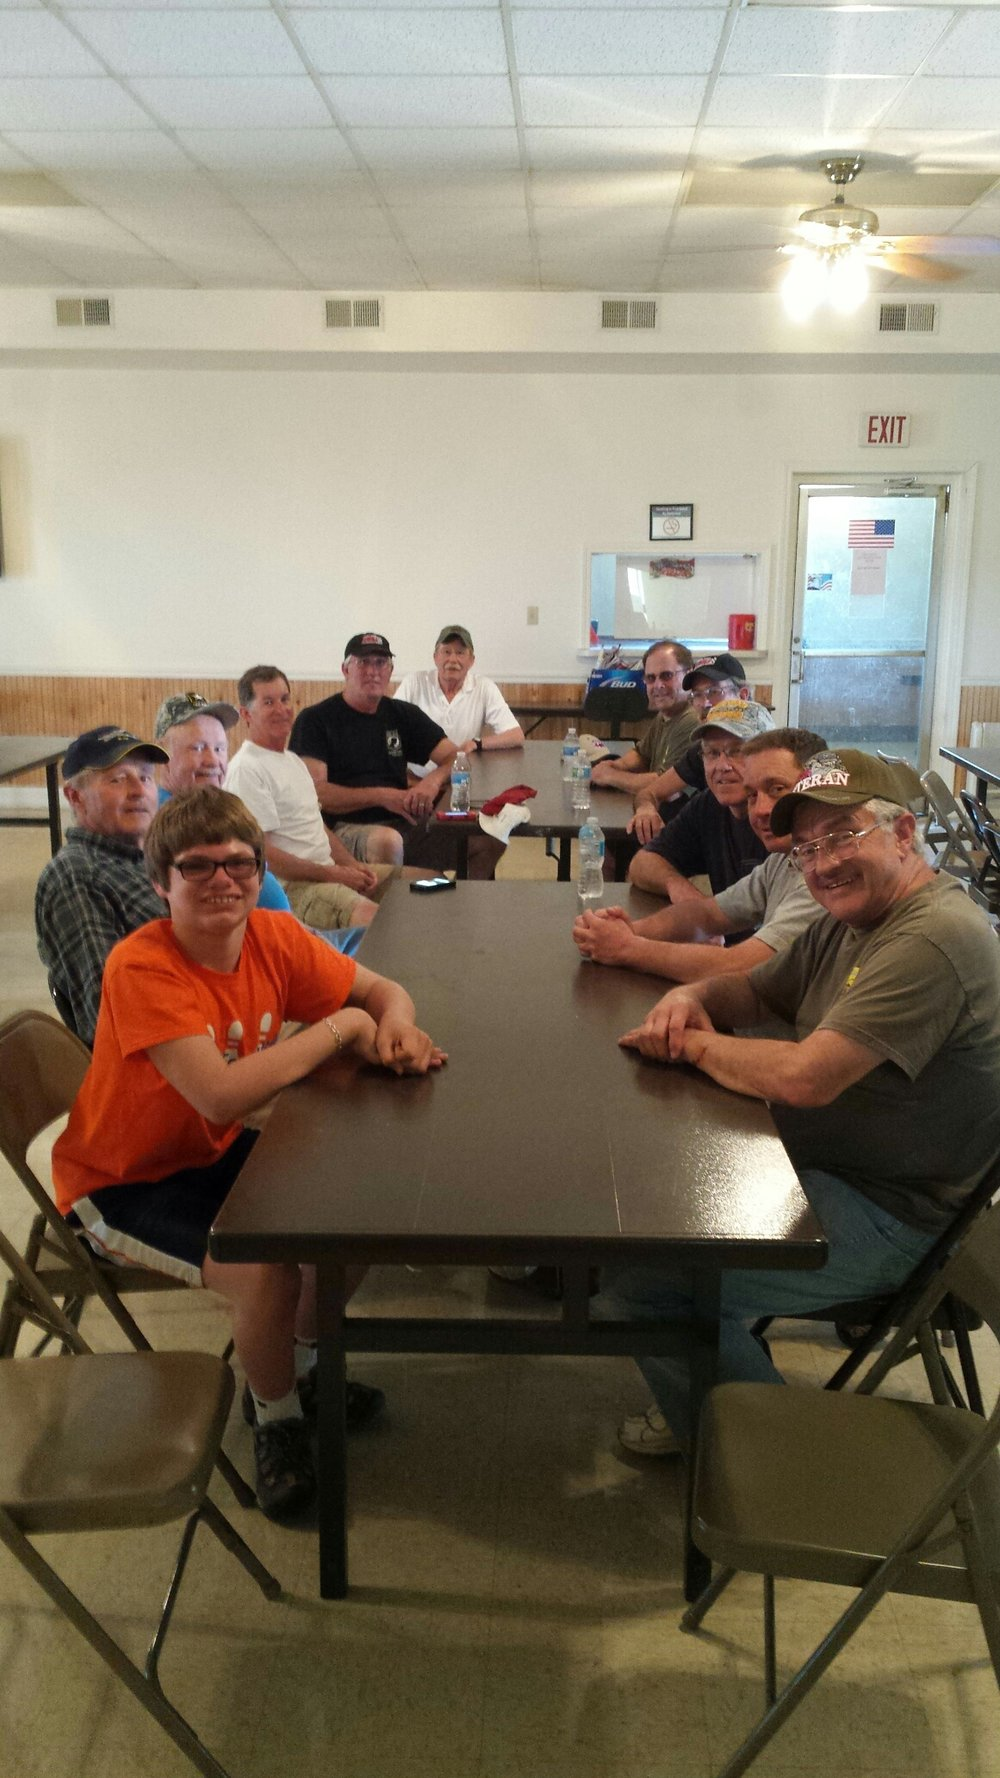 The crew being treated to an outstanding brunch, provided by Jim Hamilton, his son, and fellow members of the Sullivan VFW.